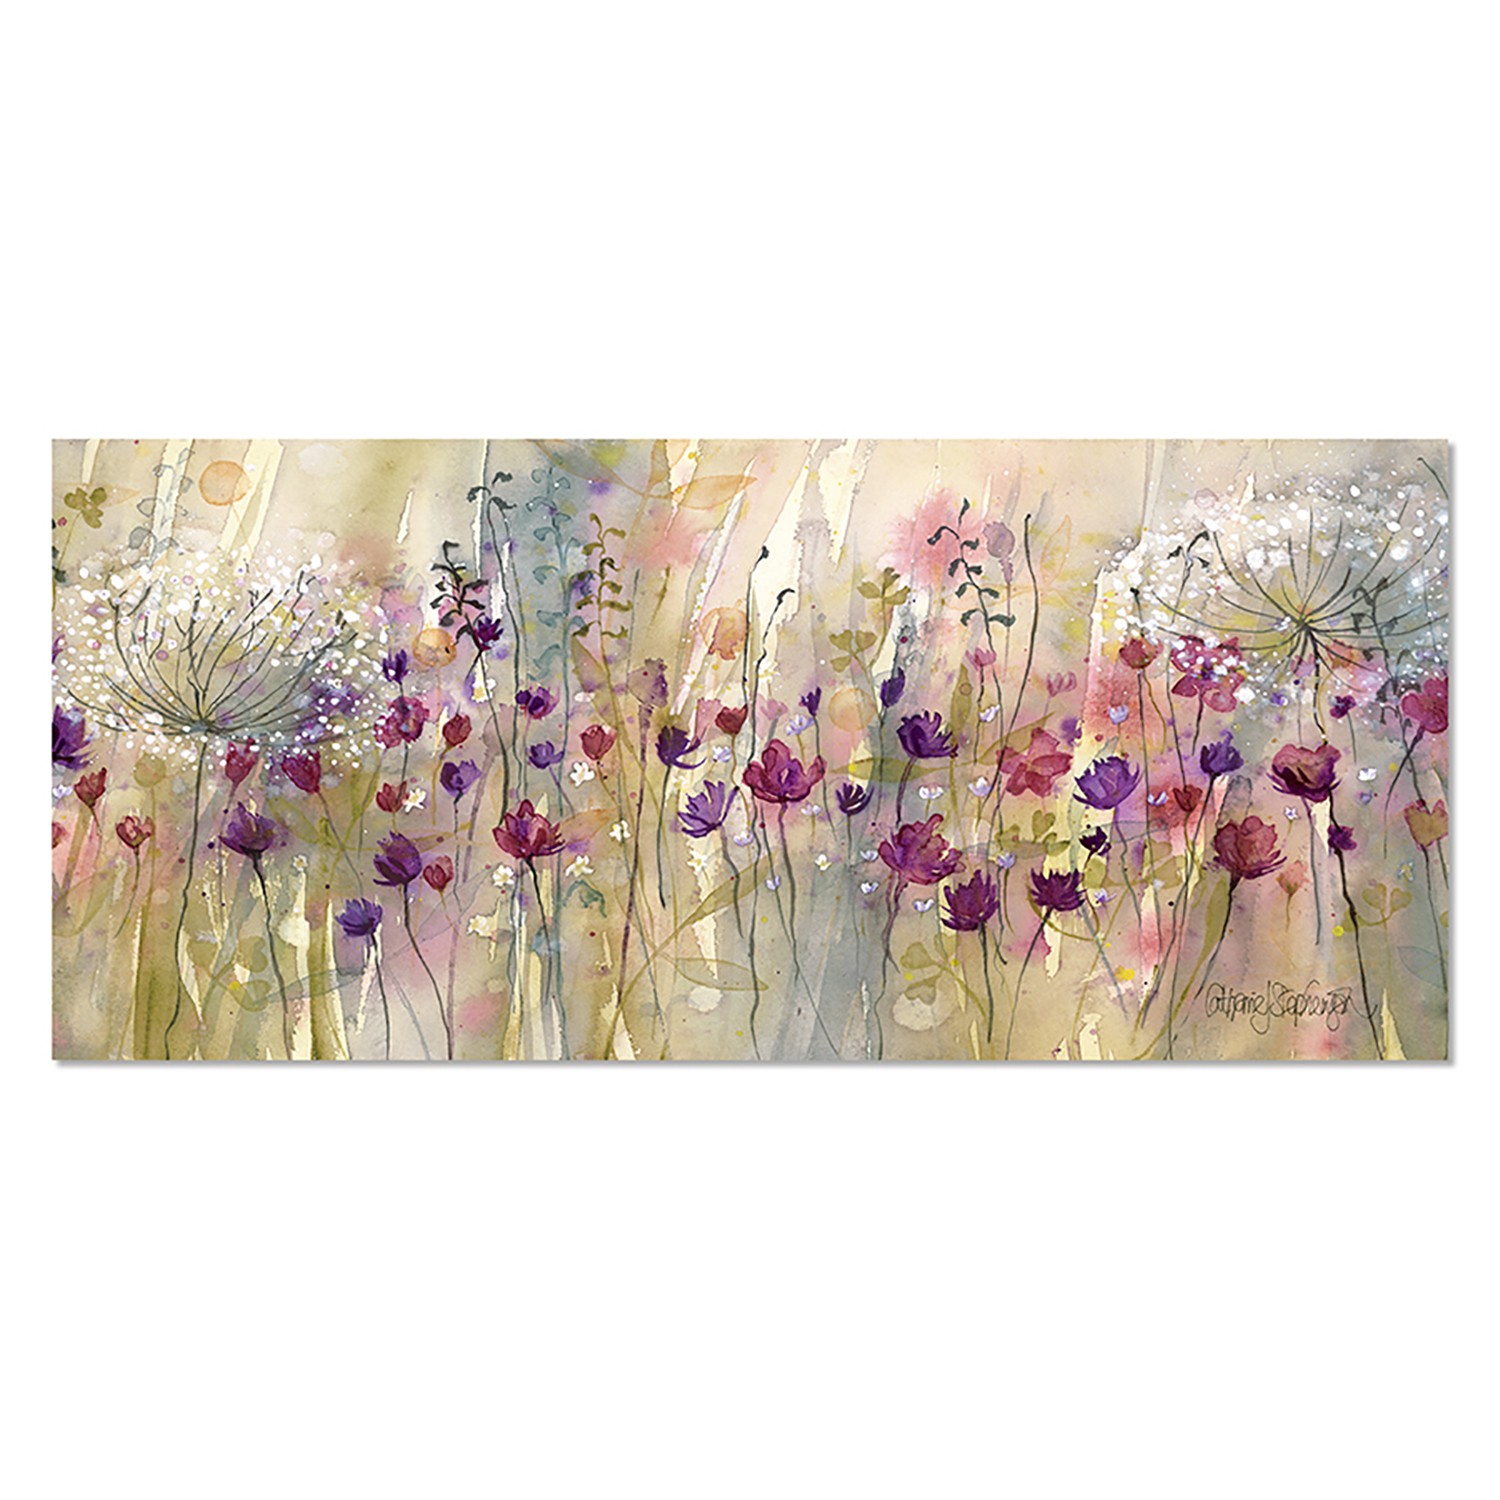 Image of Catherine Stephenson Spring Floral Pods Canvas, Multi